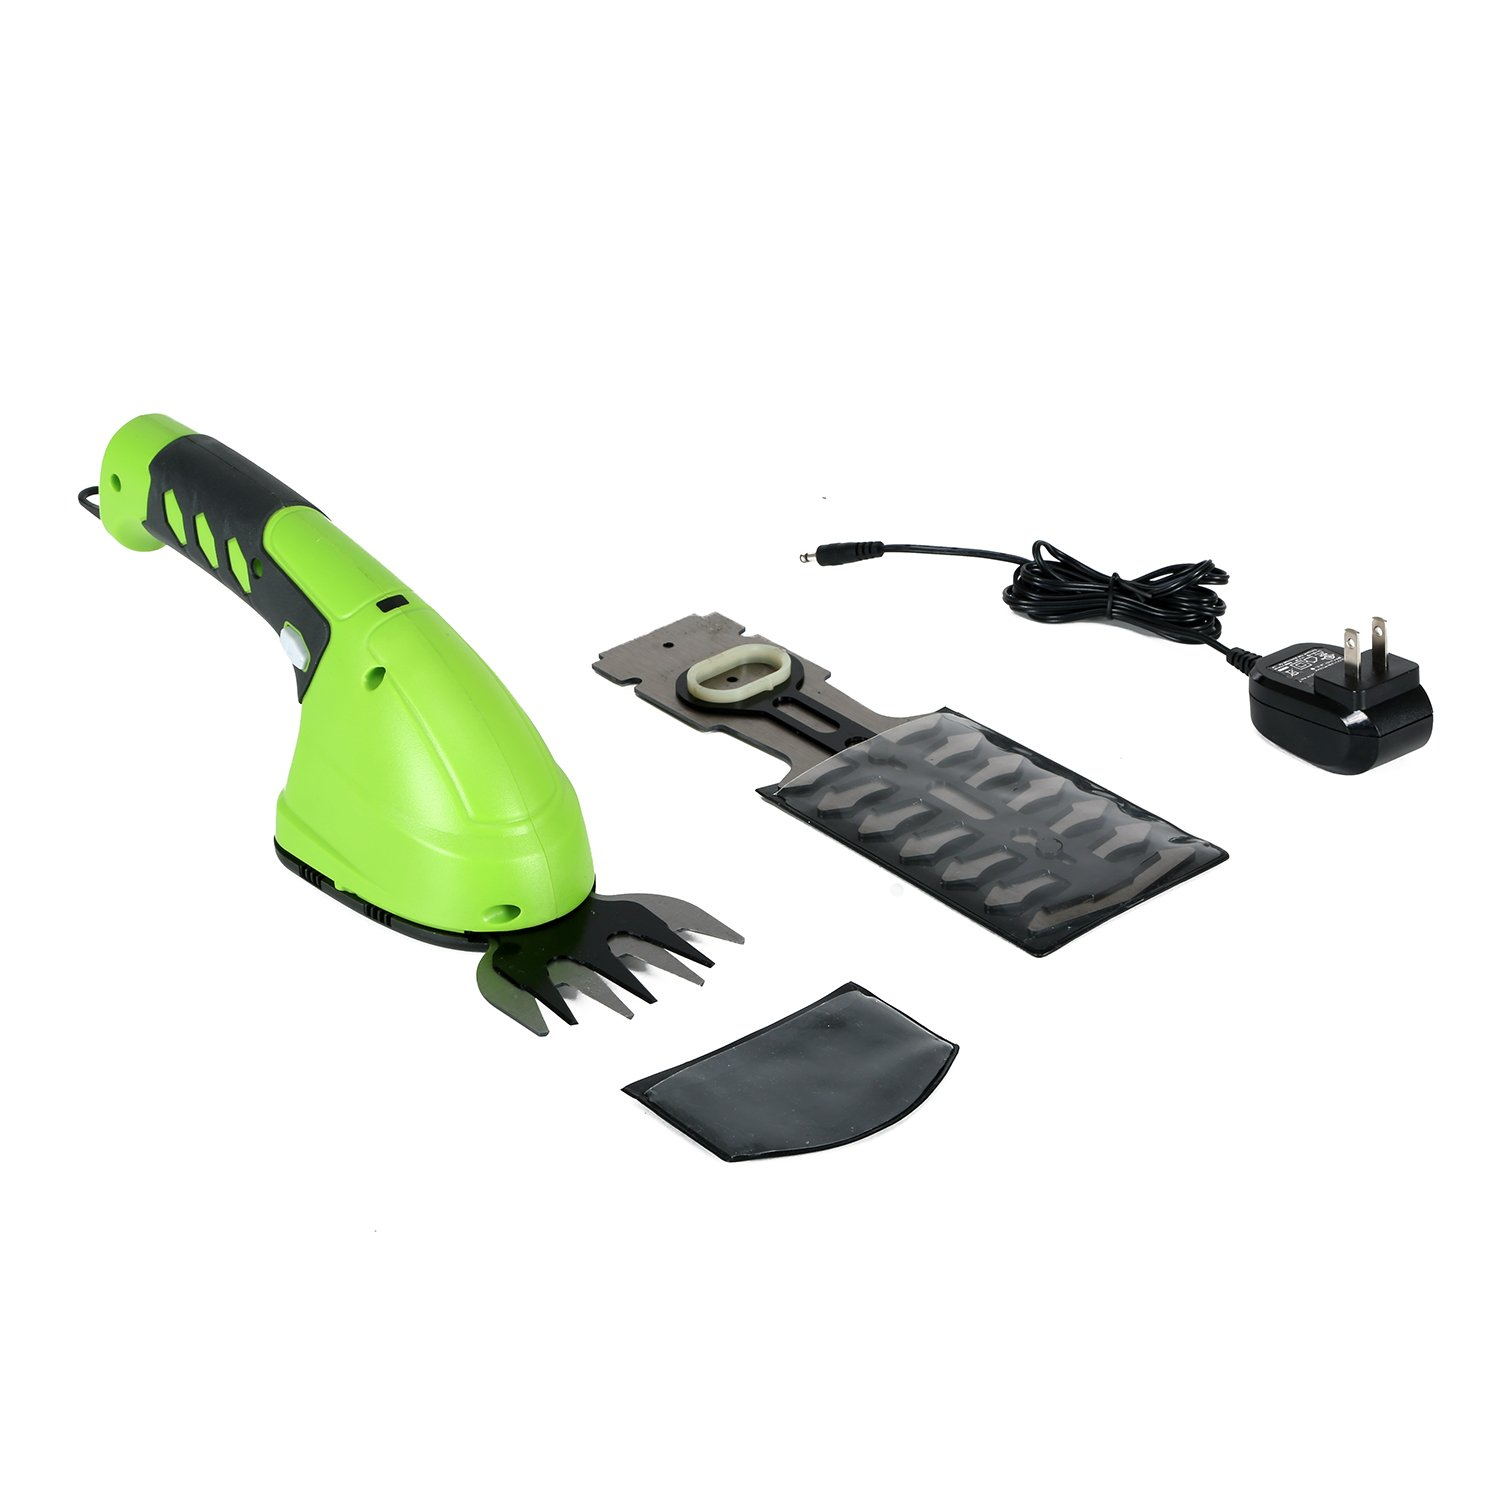 Greenworks 7.2V Cordless Hedge Shear Shrubber SH07B00